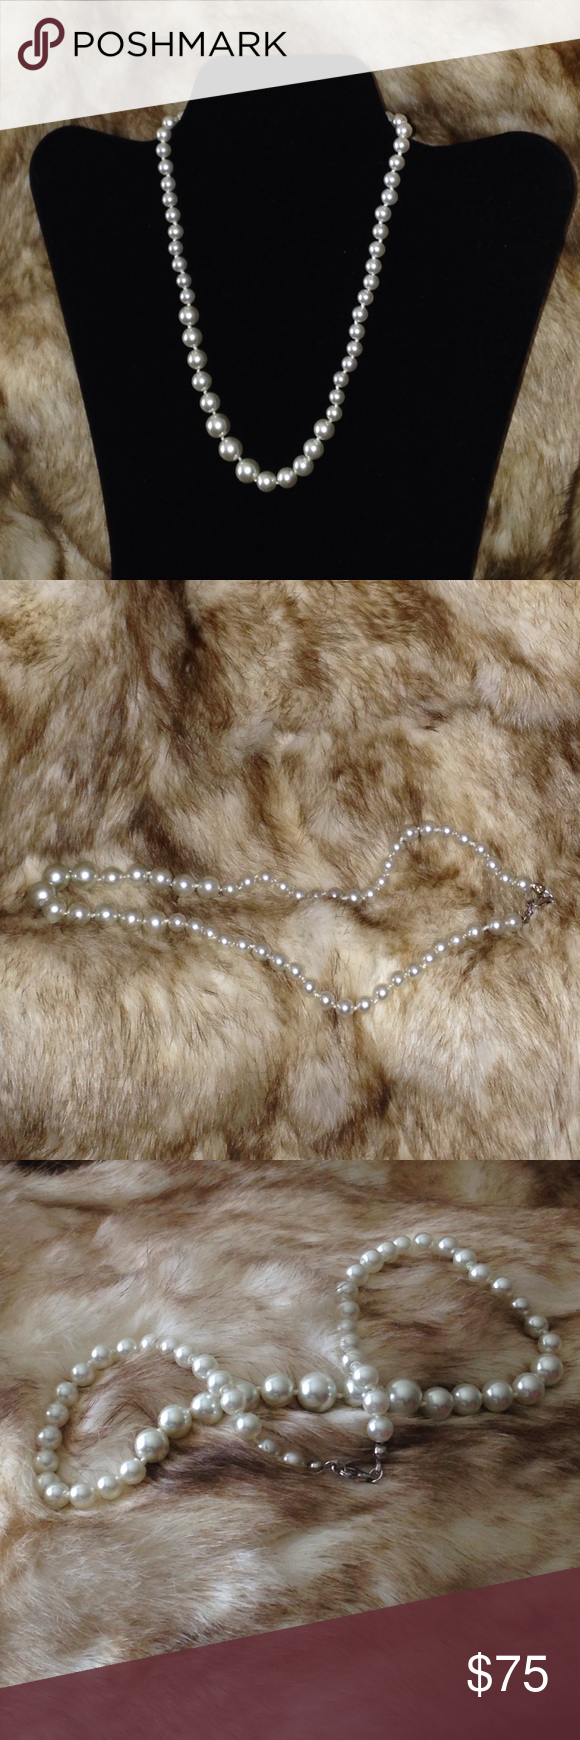 "🔥925 Pearl Necklace🔥 Every woman loves pearls. 😍😍 Pearl necklace 925. Silver clasps. 15"" Jewelry Necklaces"